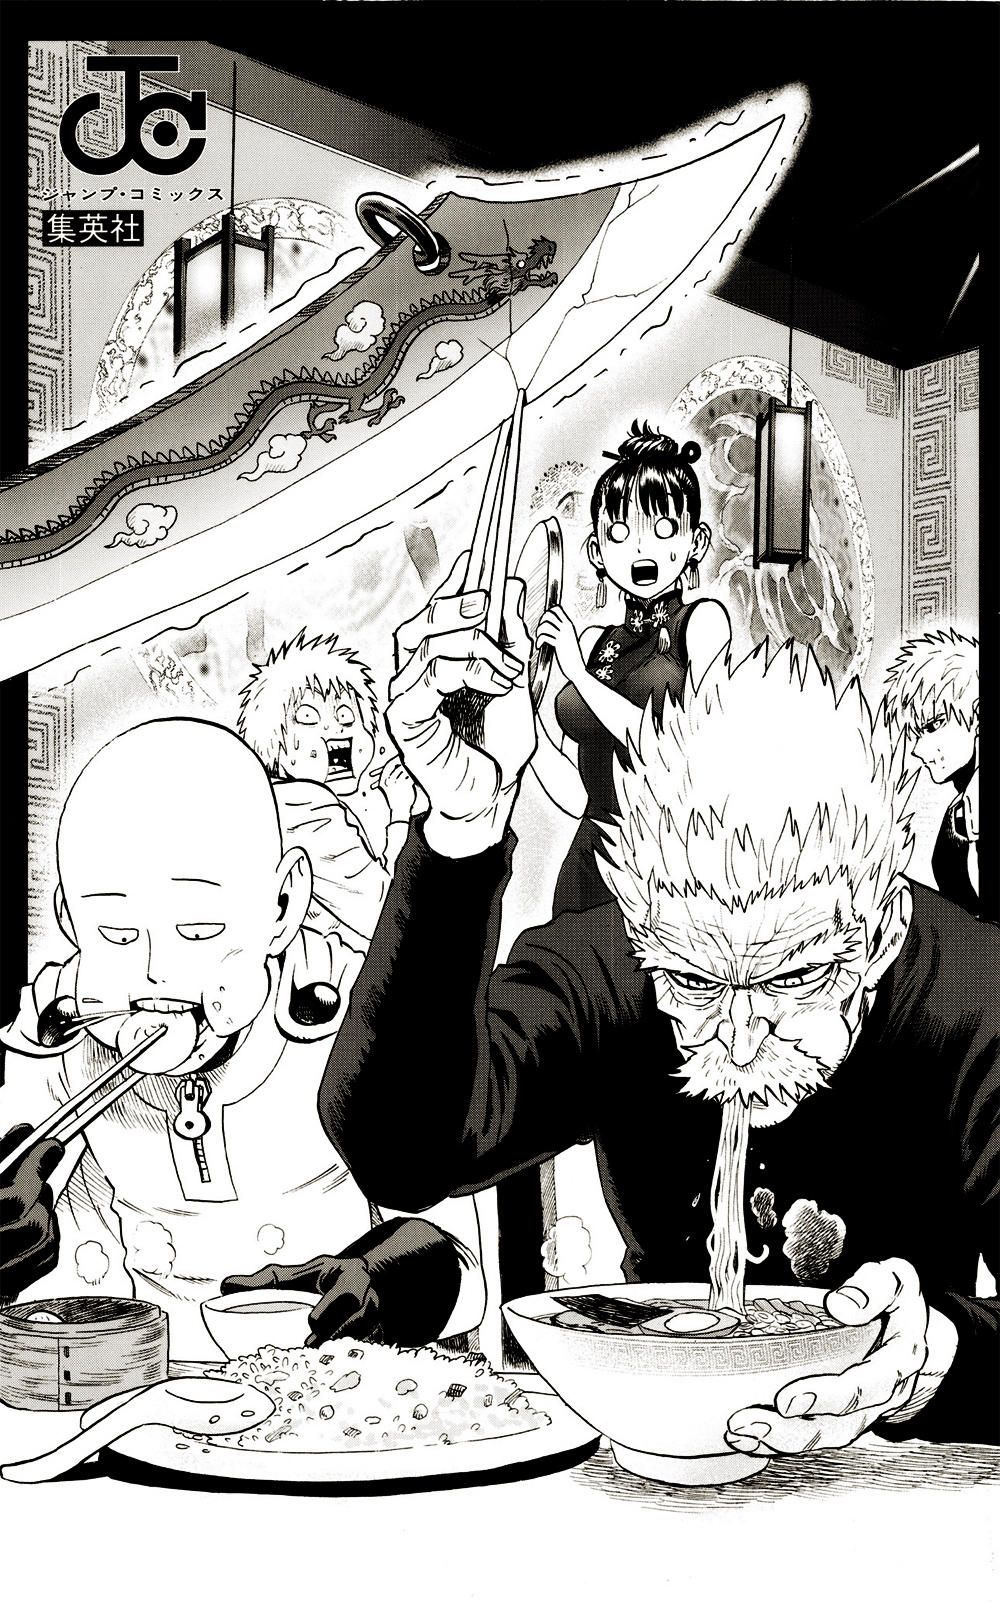 One Punch Man One Punch Man Manga One Punch Man Anime One Punch Man Funny